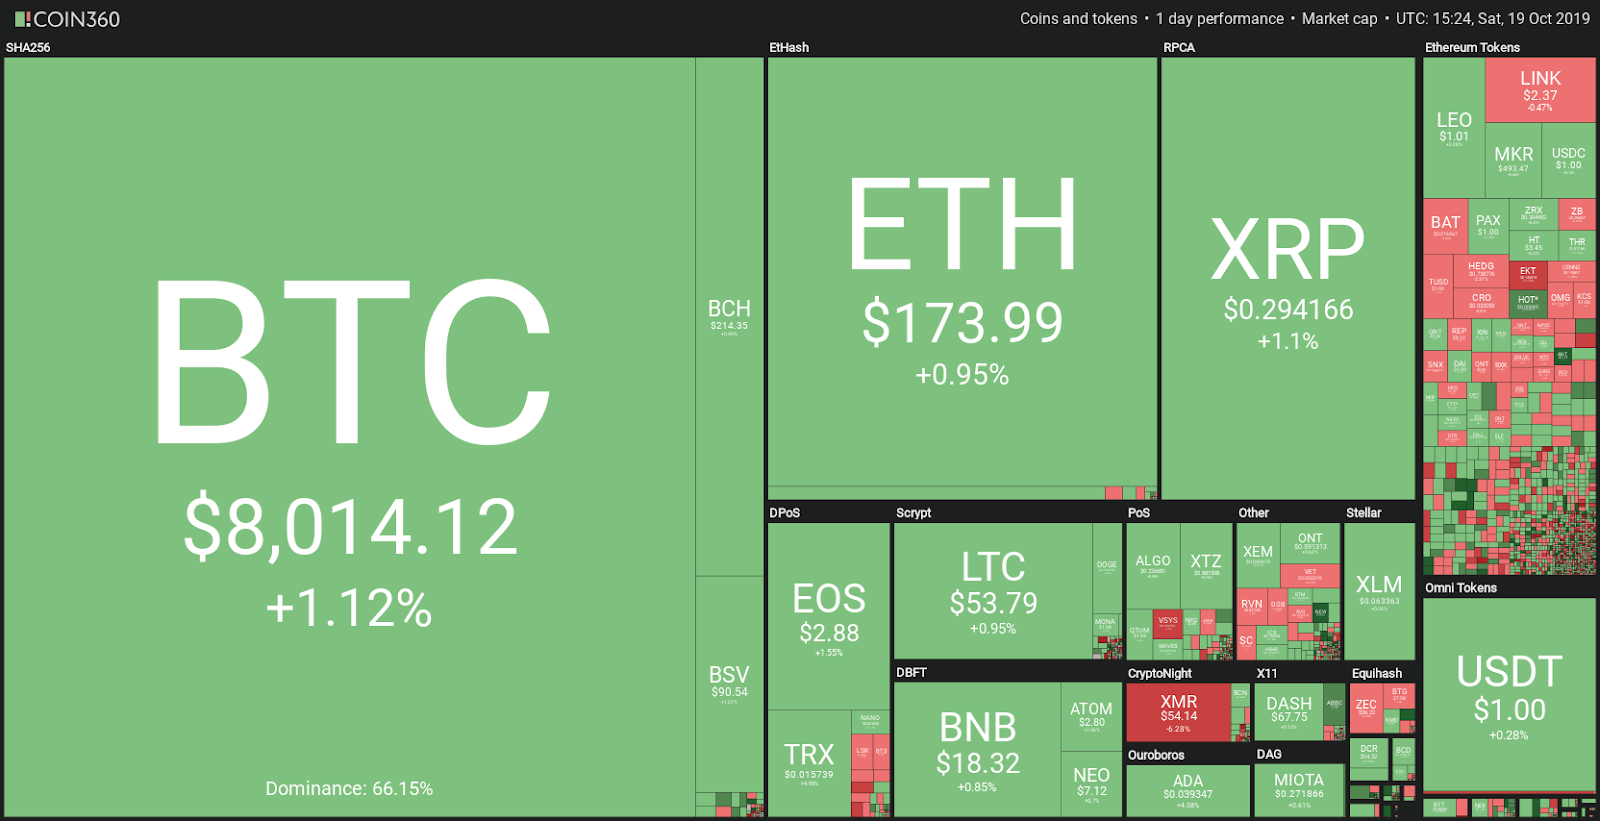 Visualization of the market. Fuente: Coin360